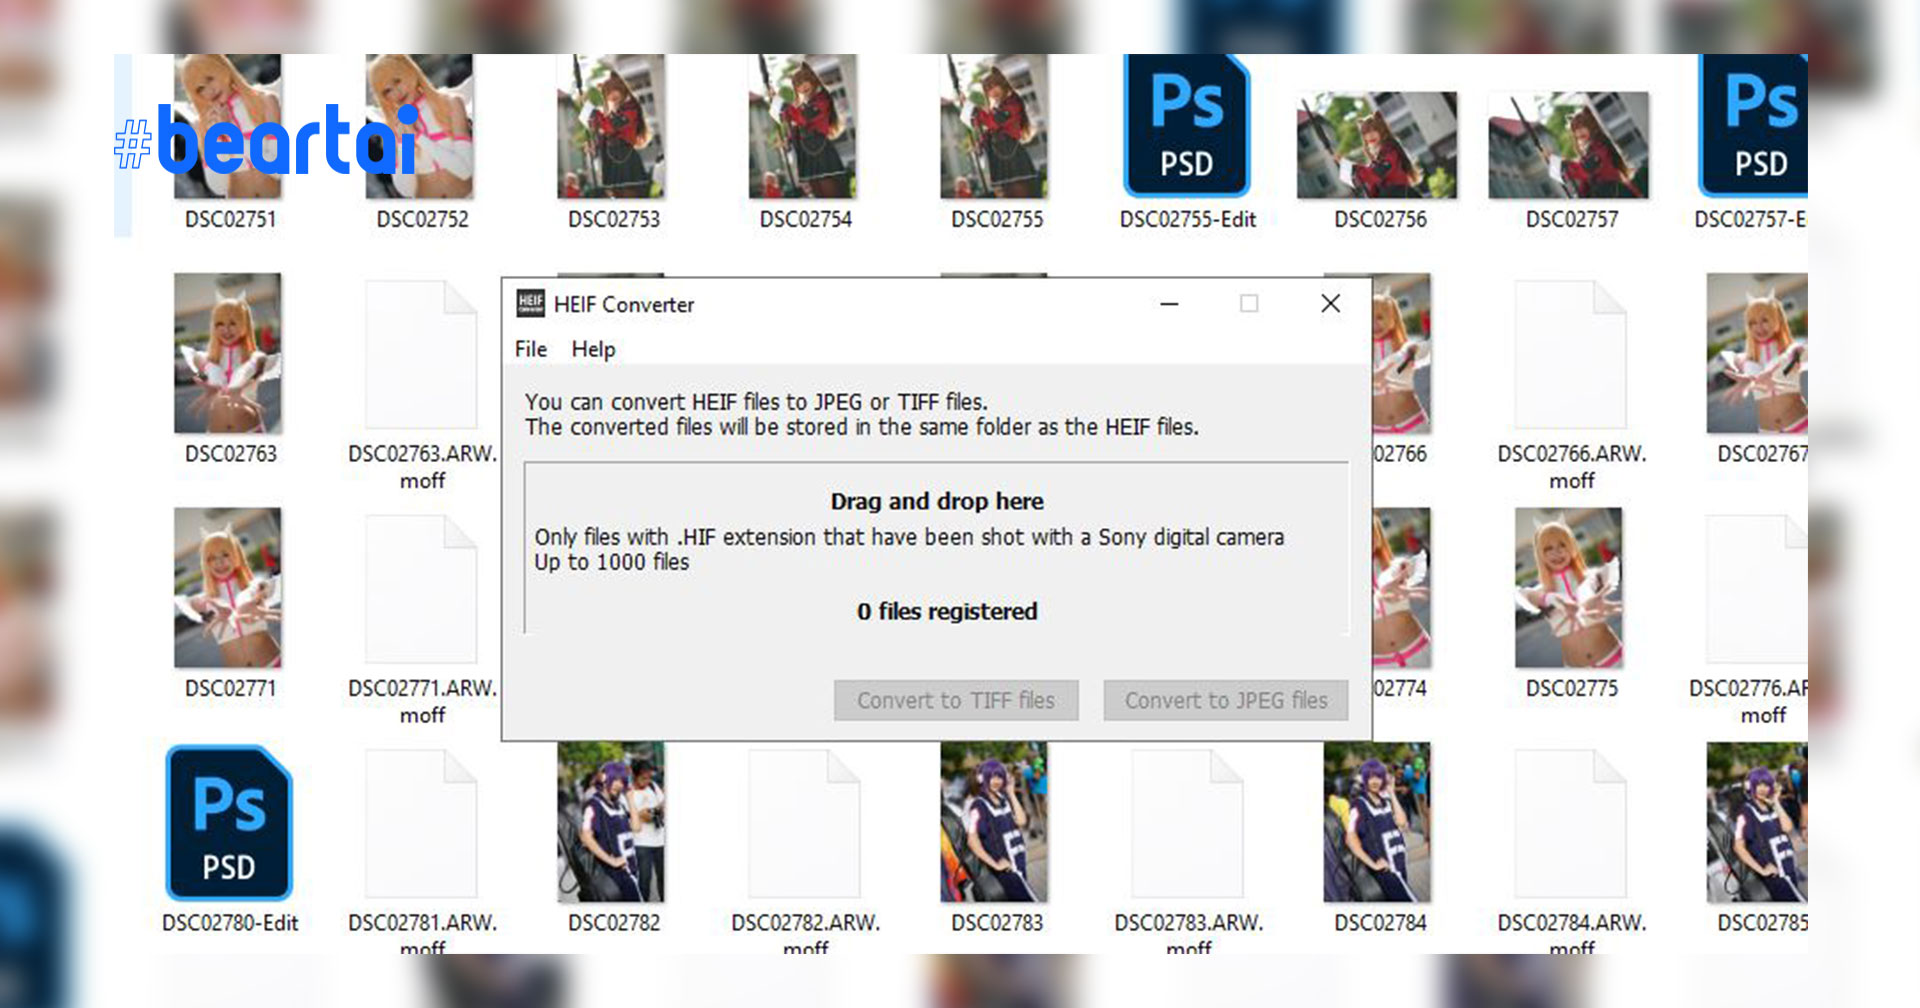 HEIF to JPEG/TIFF File Converter